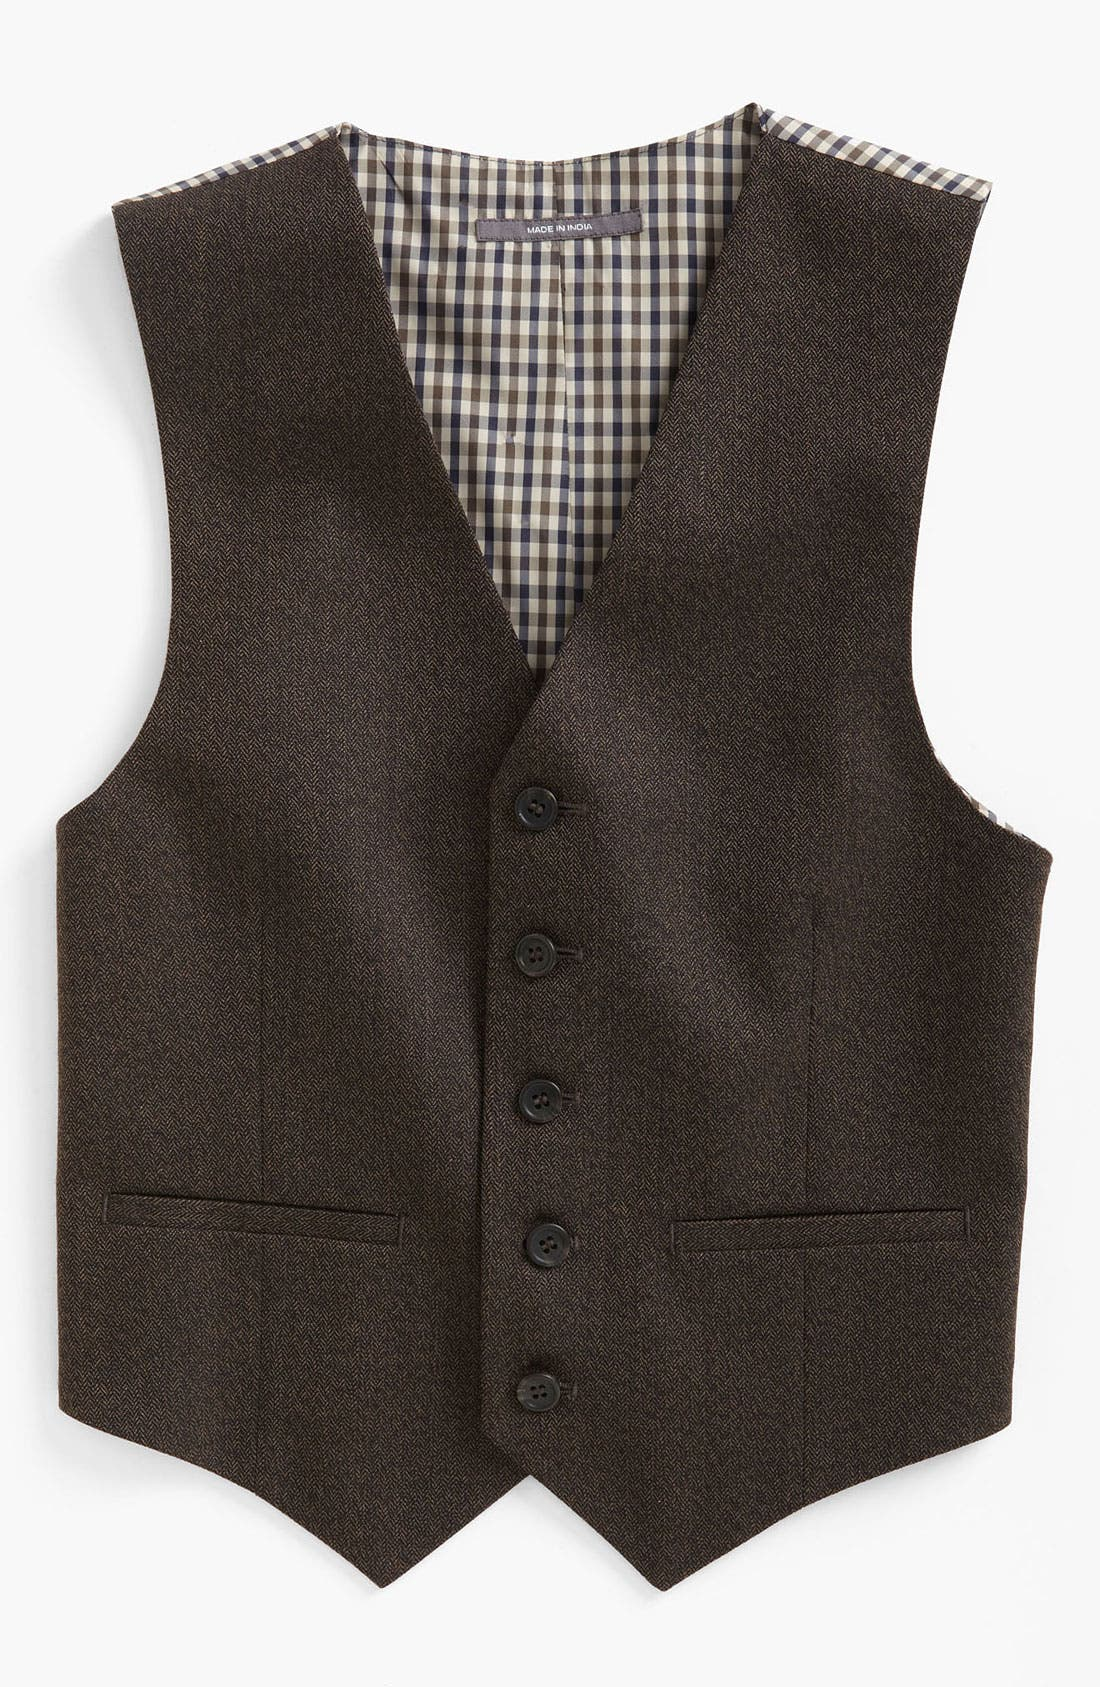 Alternate Image 1 Selected - Nordstrom 'Andrew' Herringbone Vest (Big Boys)